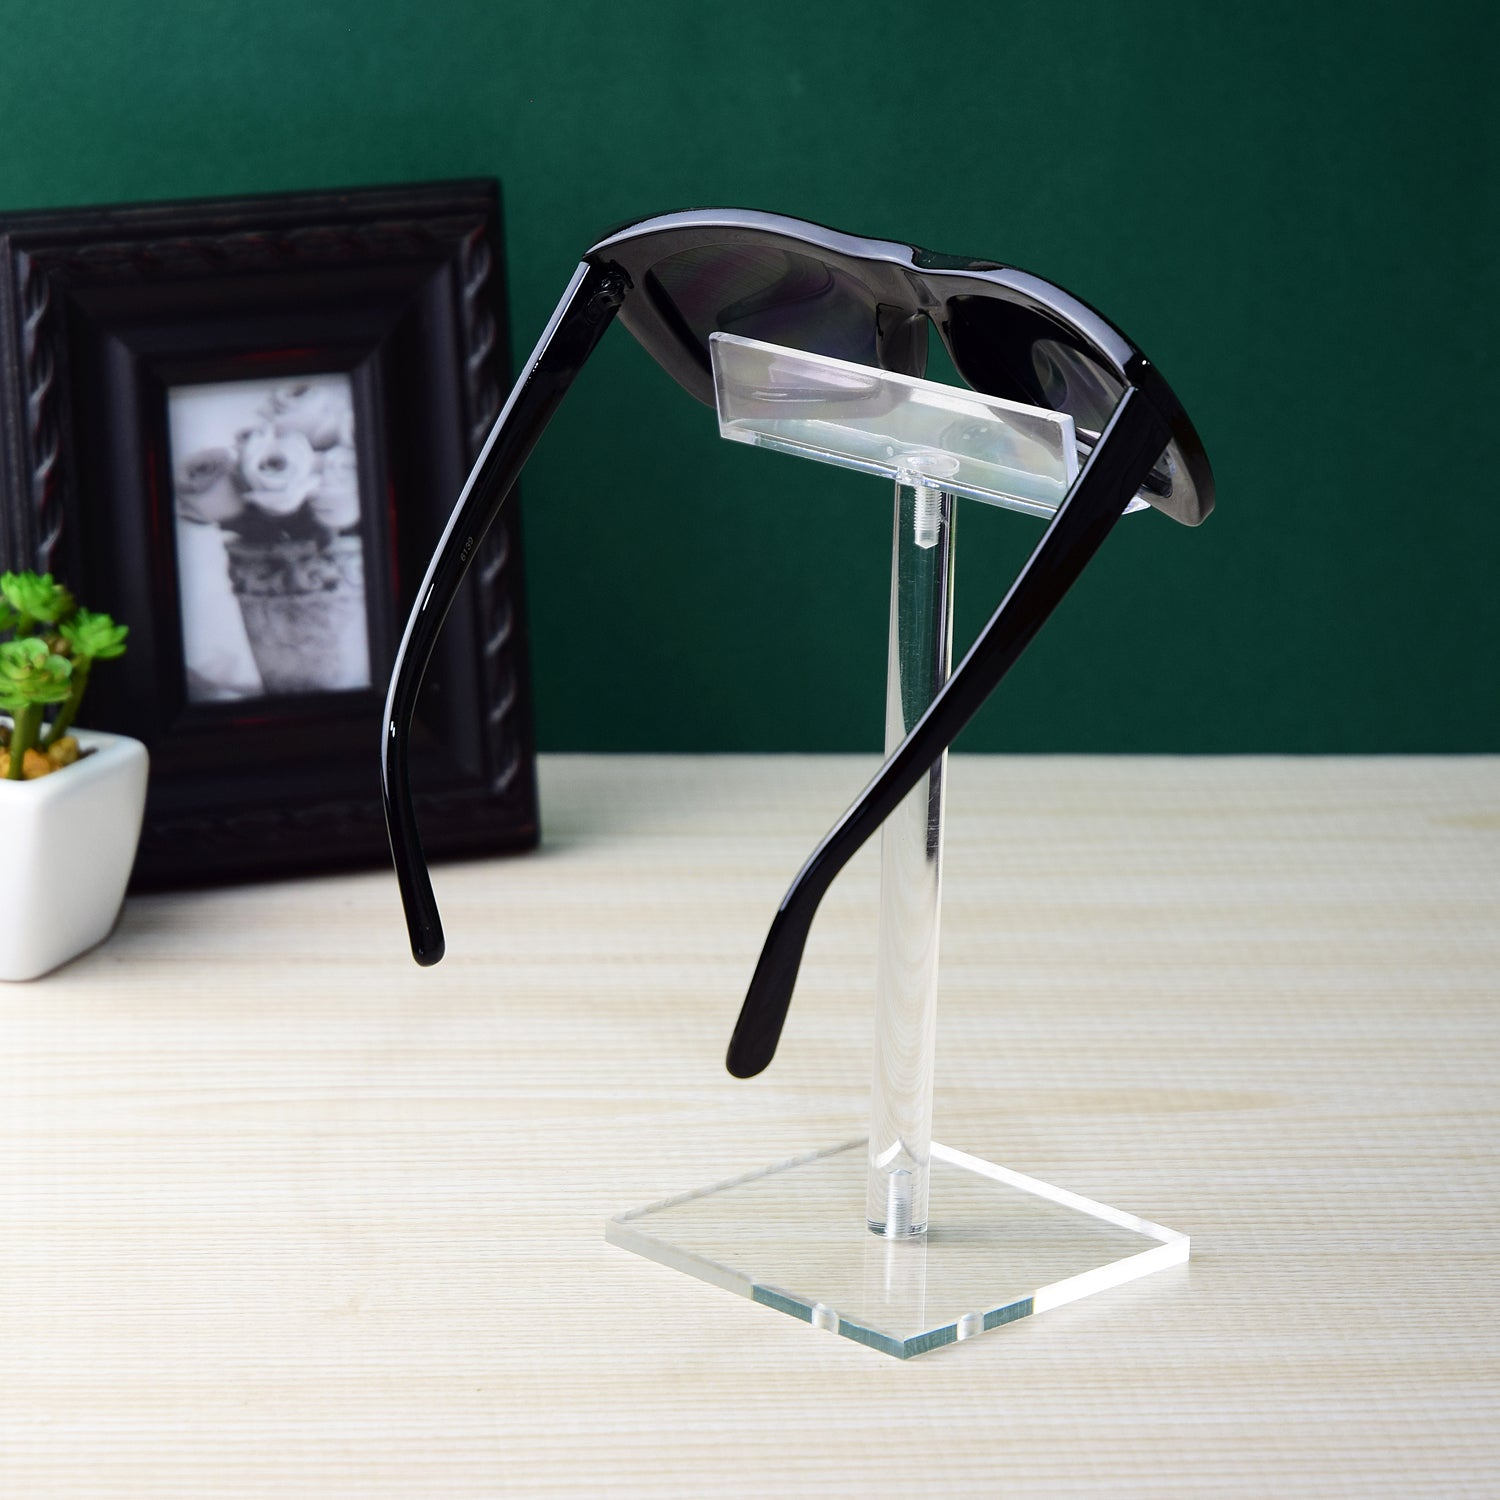 #AC-007 Acrylic Single Eyeglass Frame Stand | APEX International